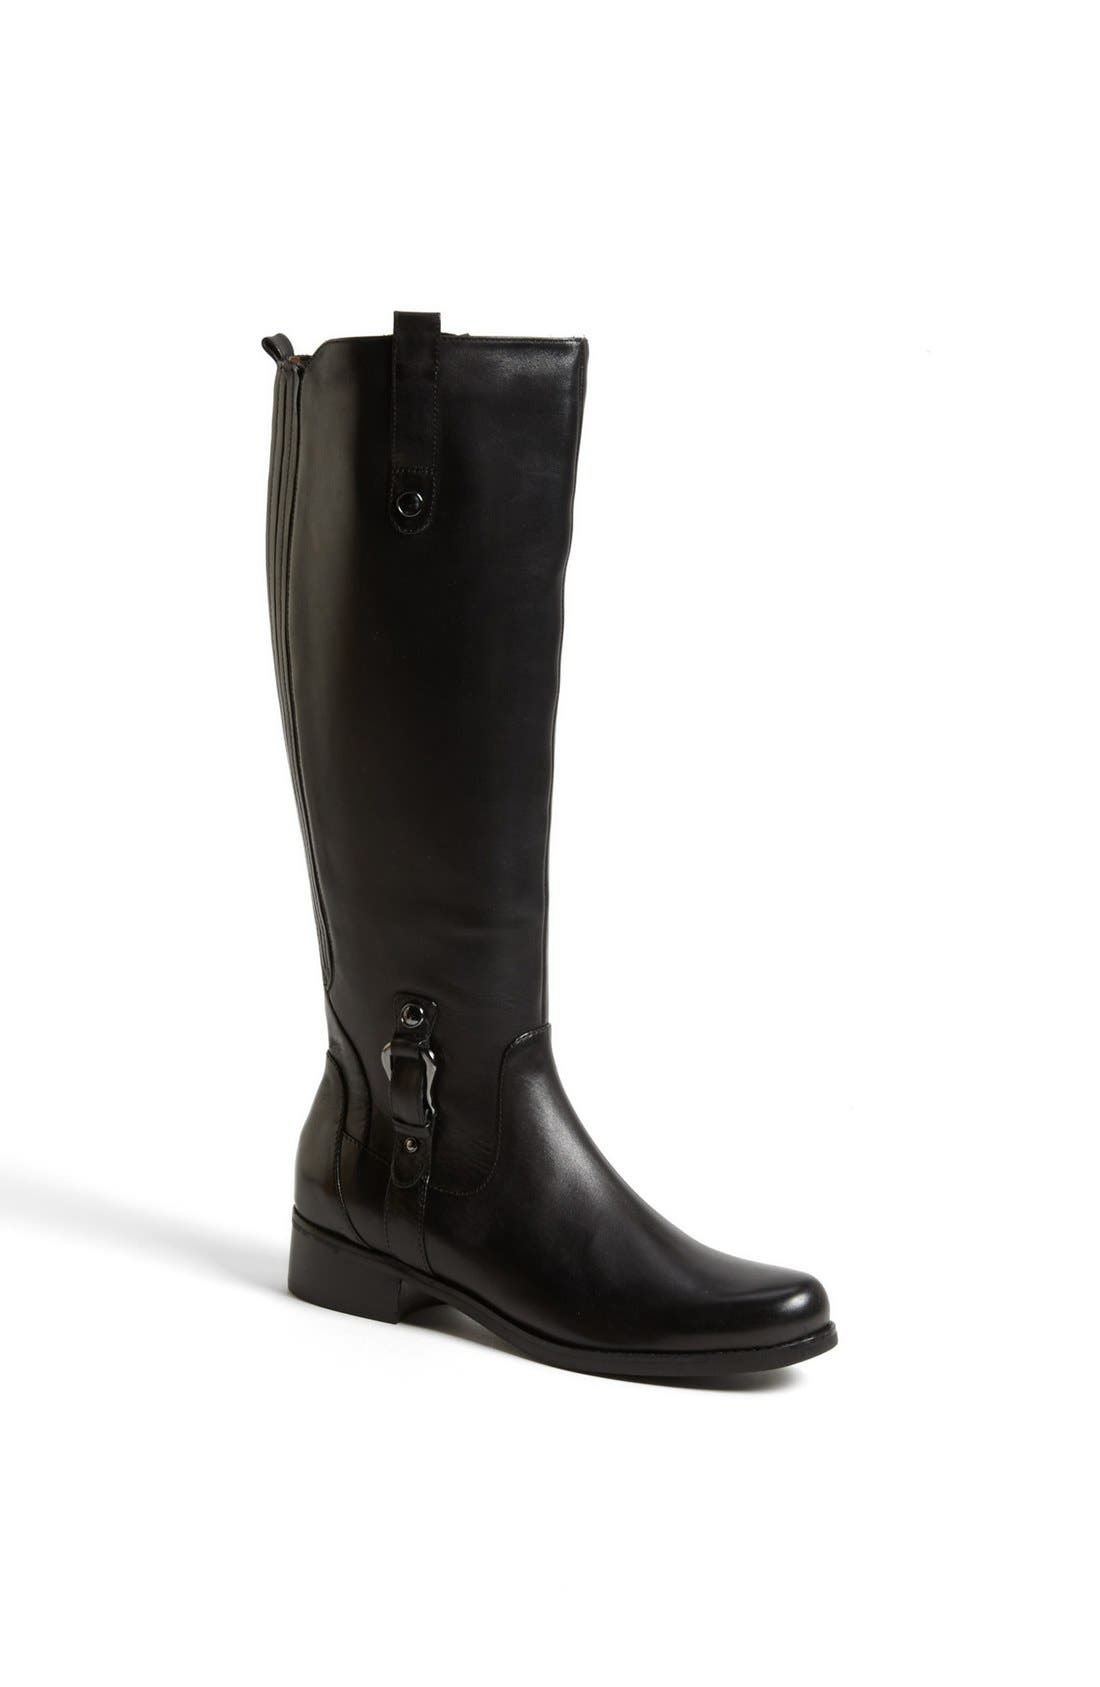 Main Image - Blondo 'Venise' Waterproof Leather Riding Boot (Women)